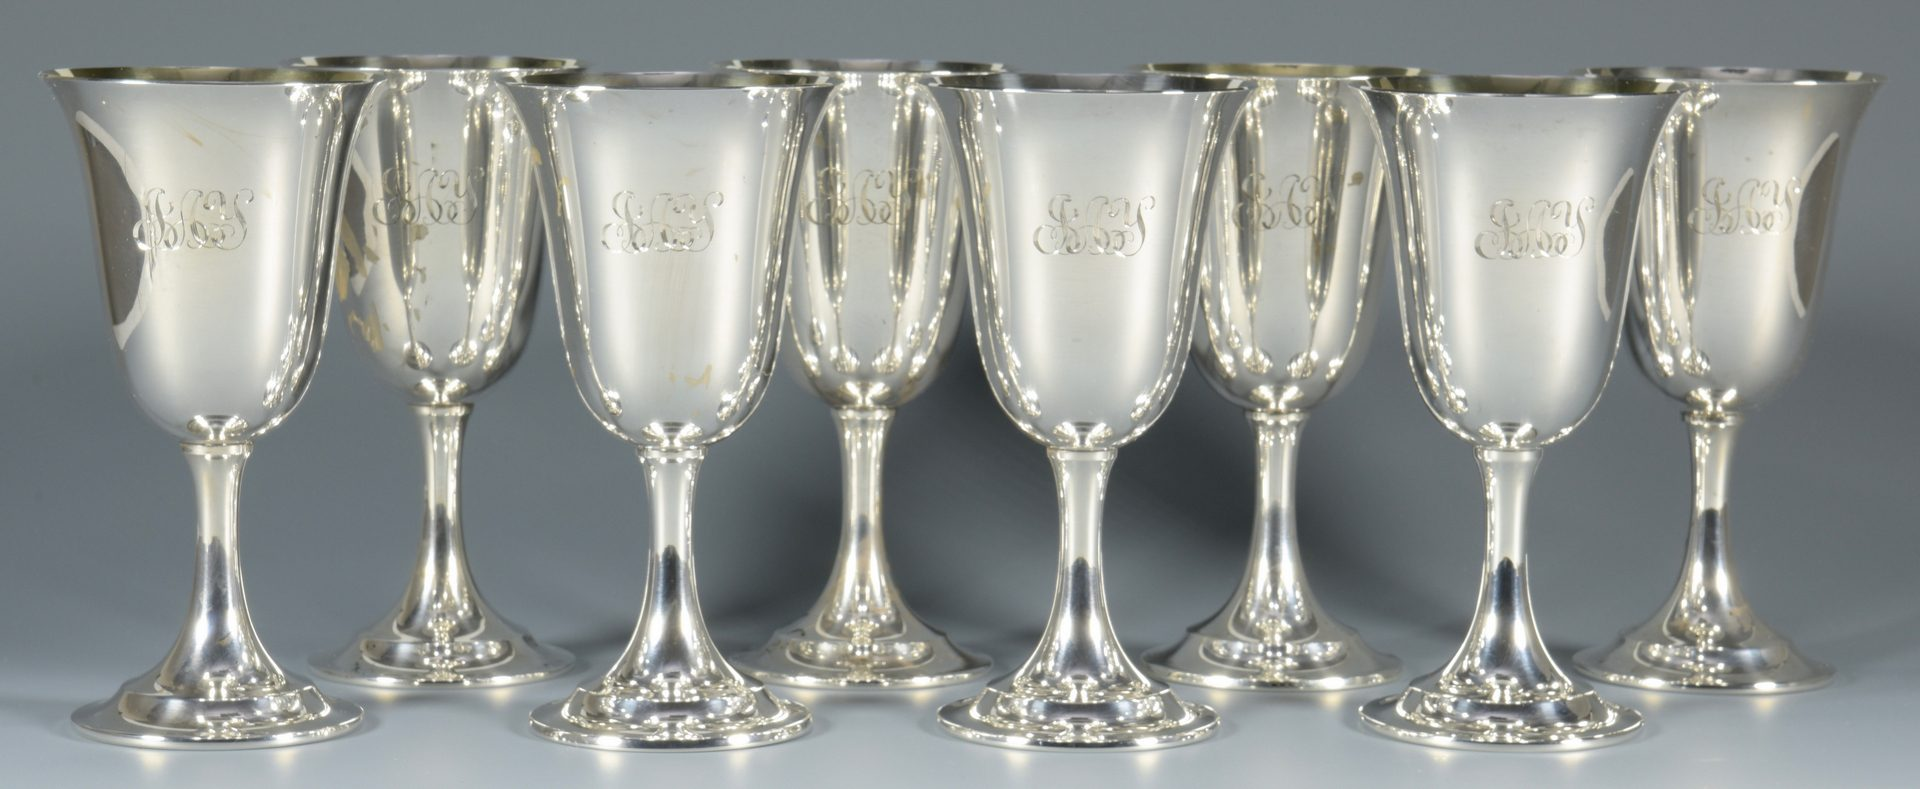 Lot 836: 8 International Sterling Silver Goblets